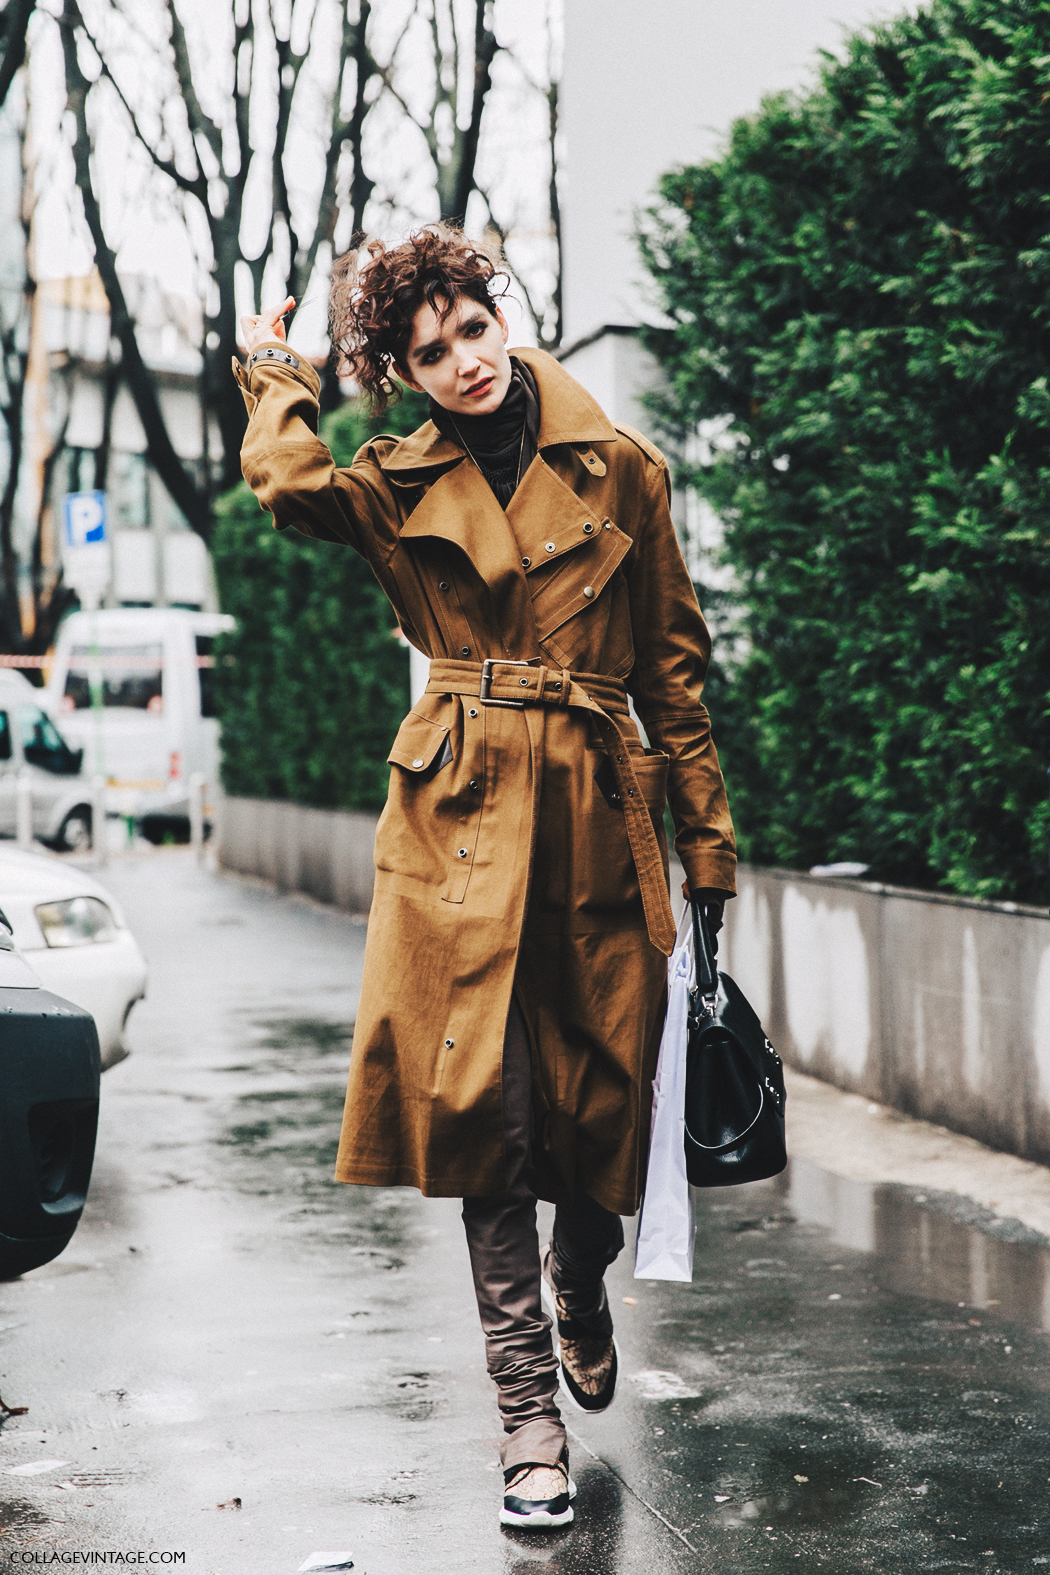 Milan_Fashion_Week_Fall_16-MFW-Street_Style-Collage_Vintage-Trench_Coat-Armani-Model-